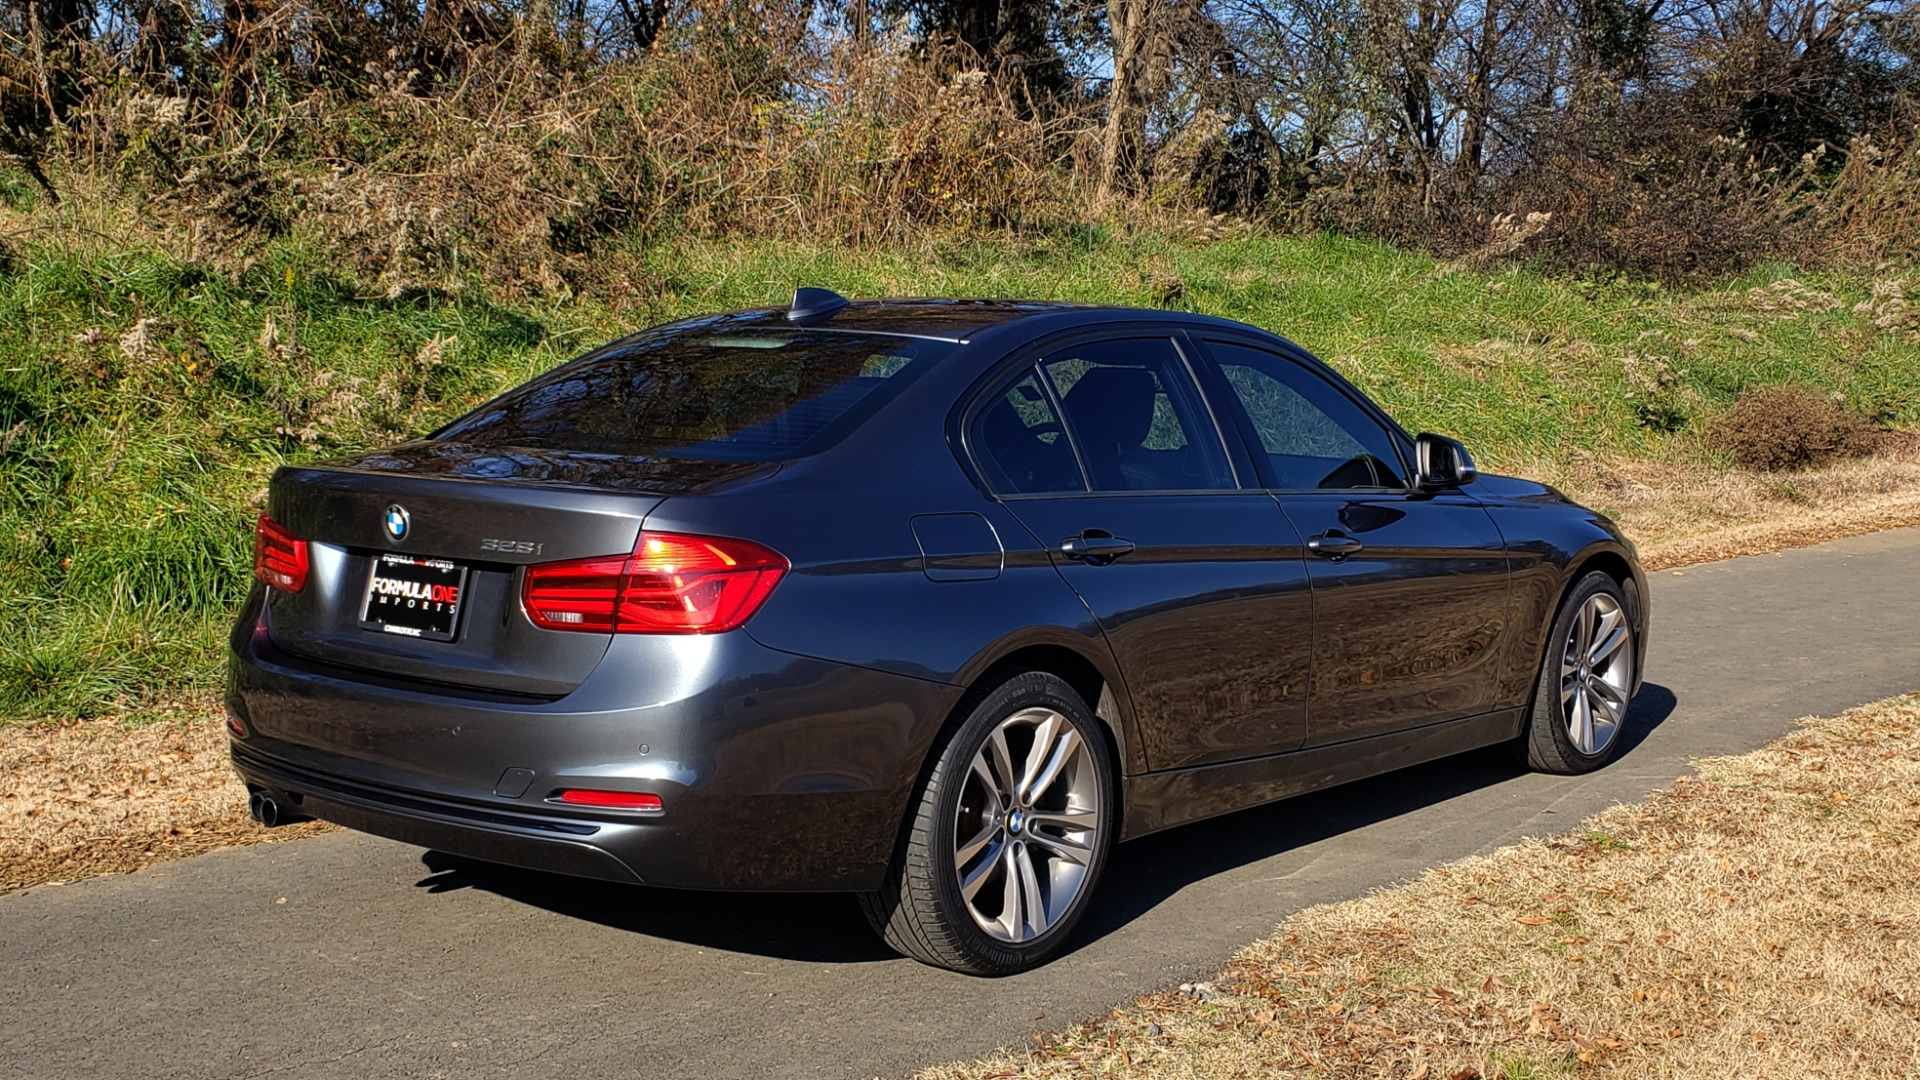 Used 2016 BMW 3 SERIES 328I / DRVR ASST / SUNROOF / PARK DIST CNTRL / REARVIEW for sale Sold at Formula Imports in Charlotte NC 28227 8